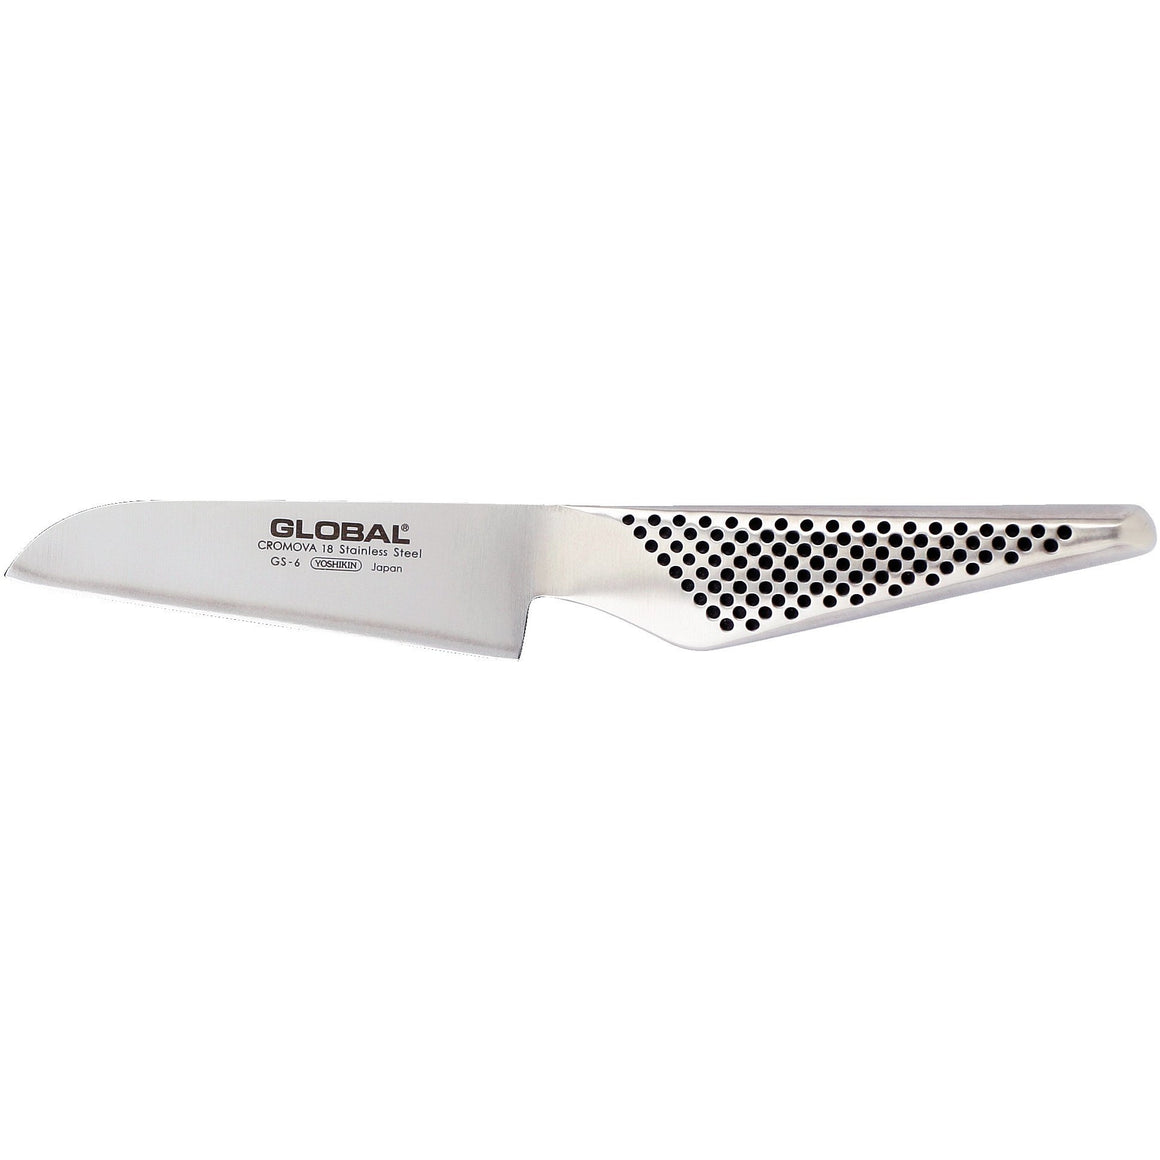 Global GS Series10cm Straight Paring Knife